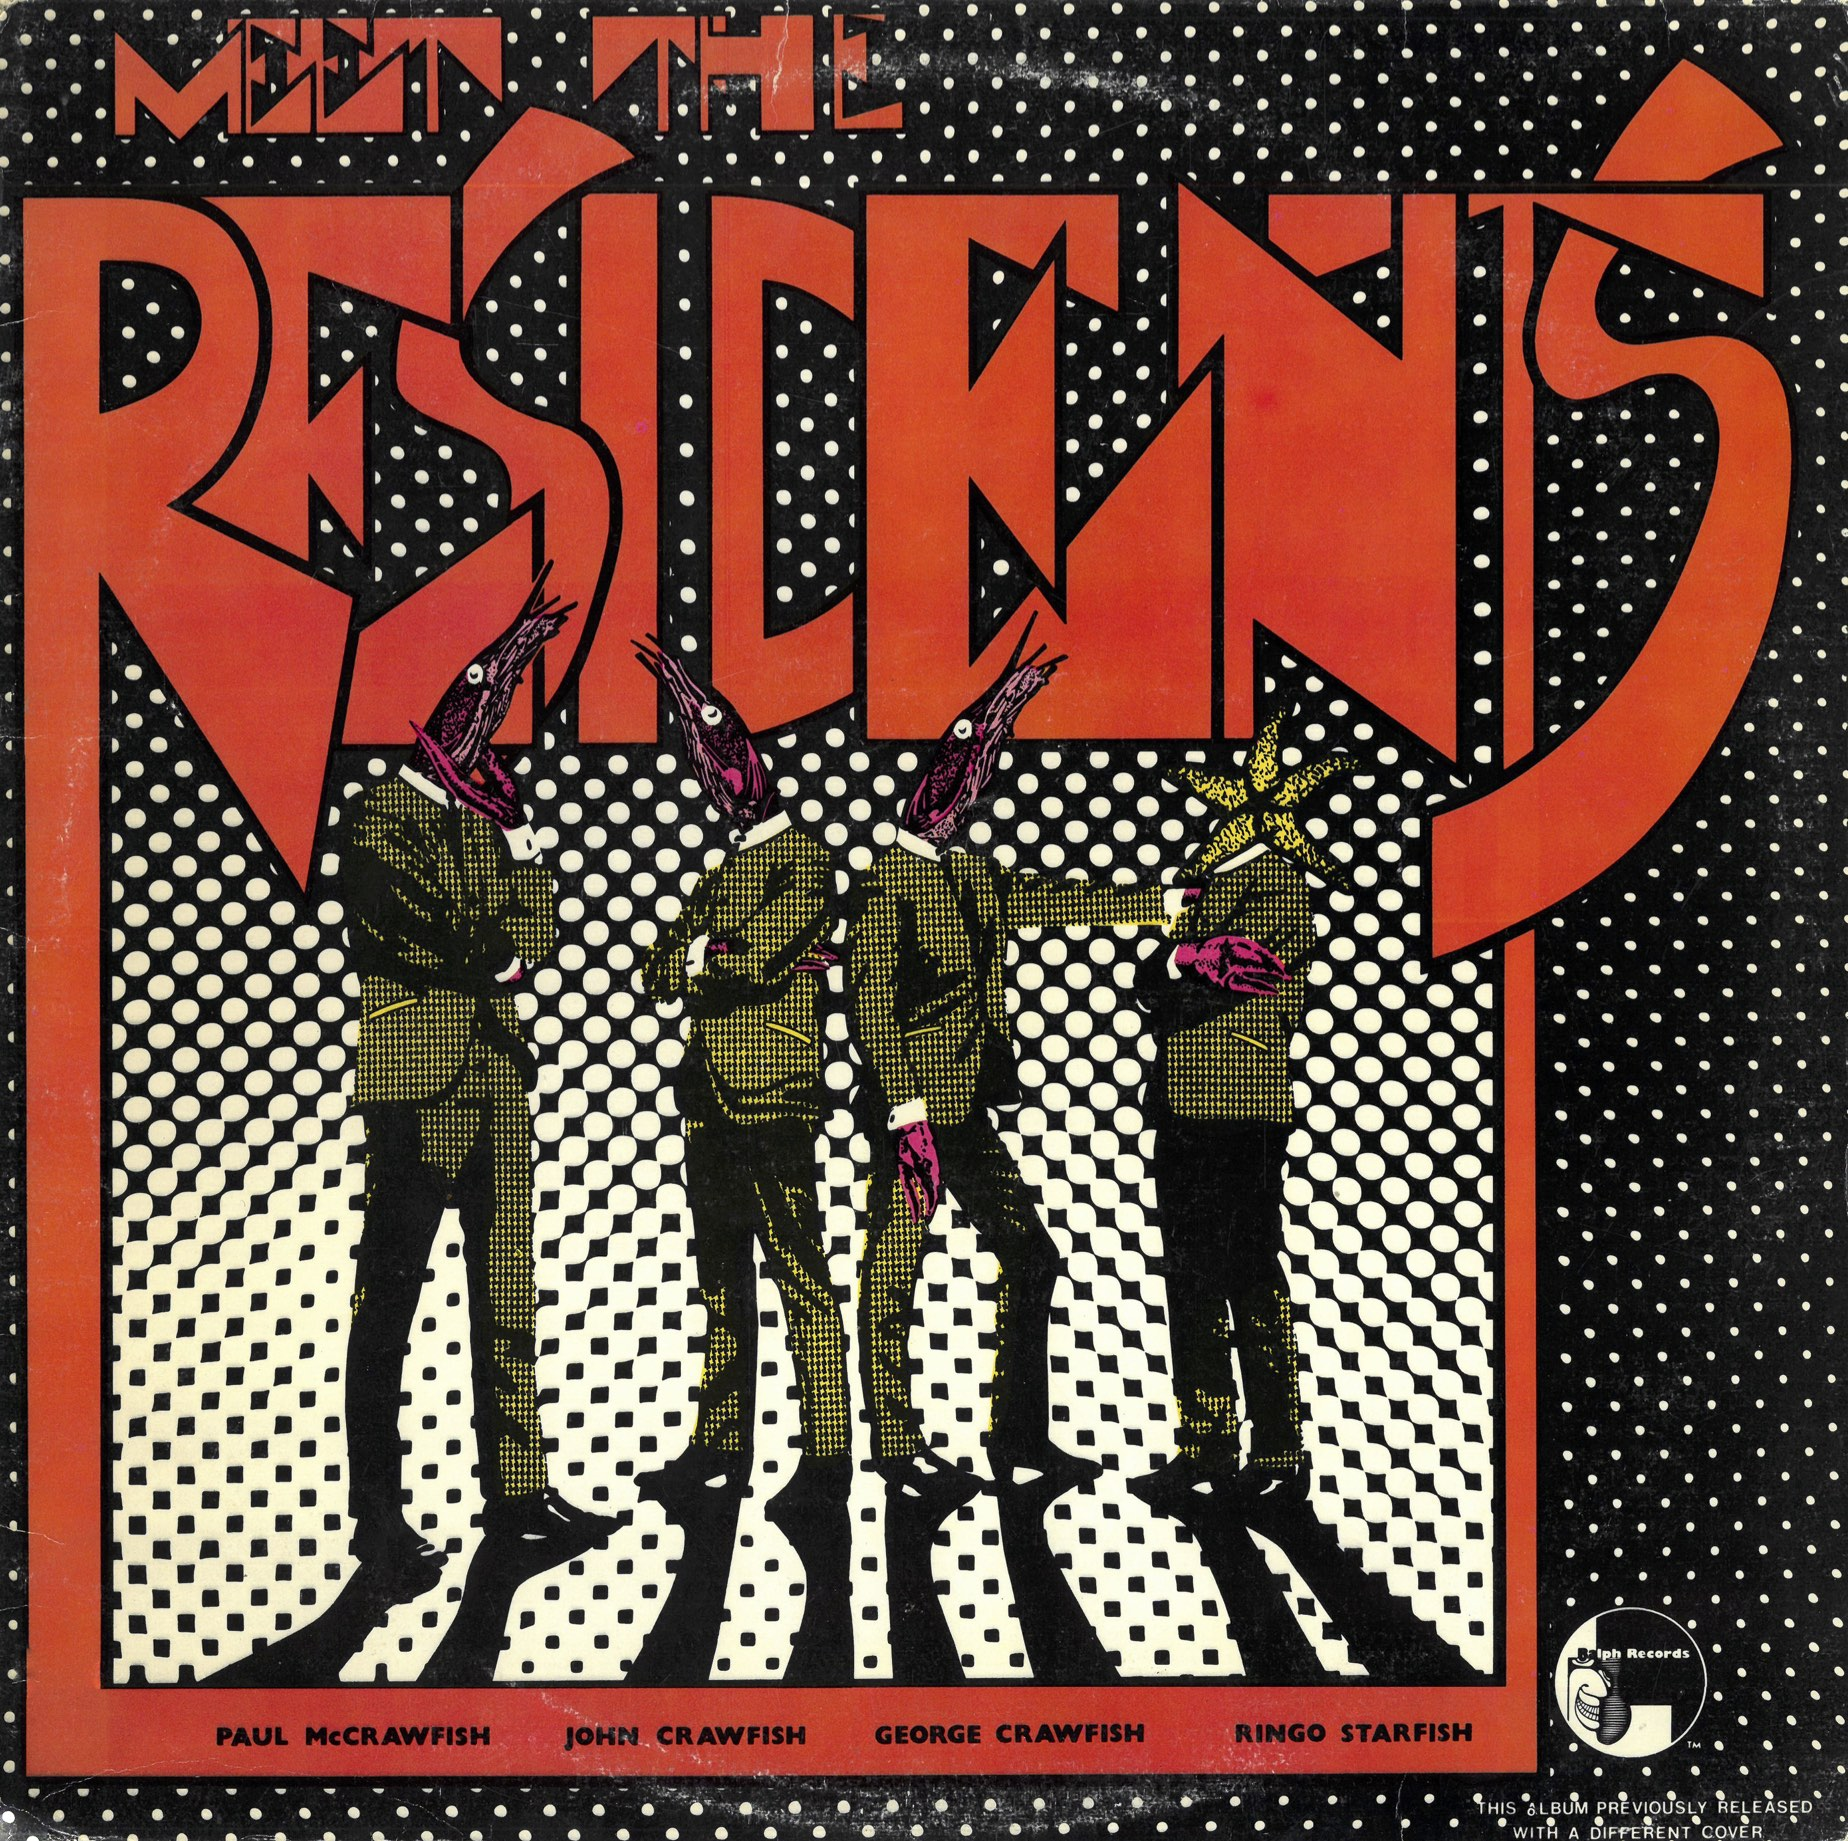 2008 - The Residents